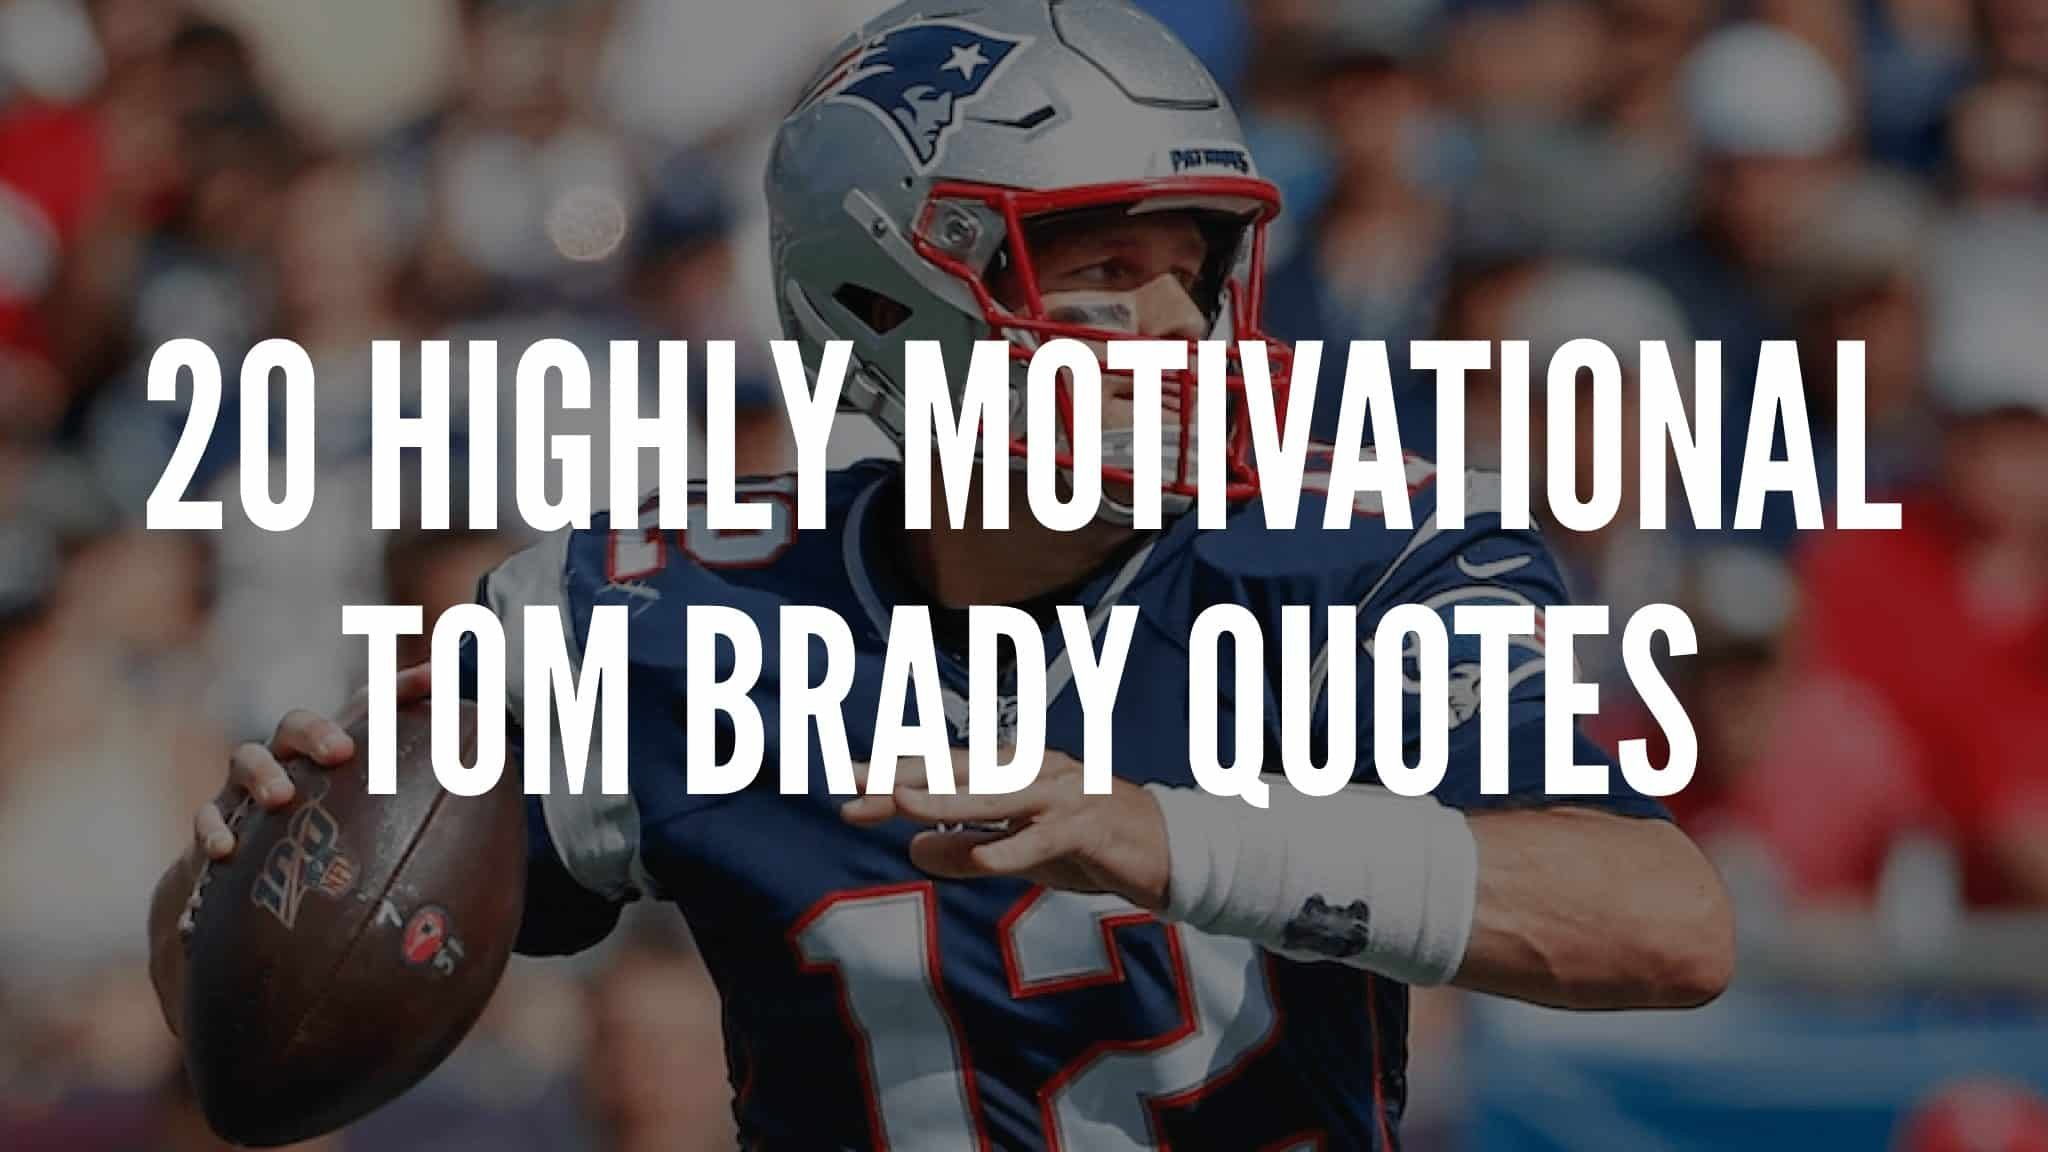 20 Highly Motivational Tom Brady Quotes